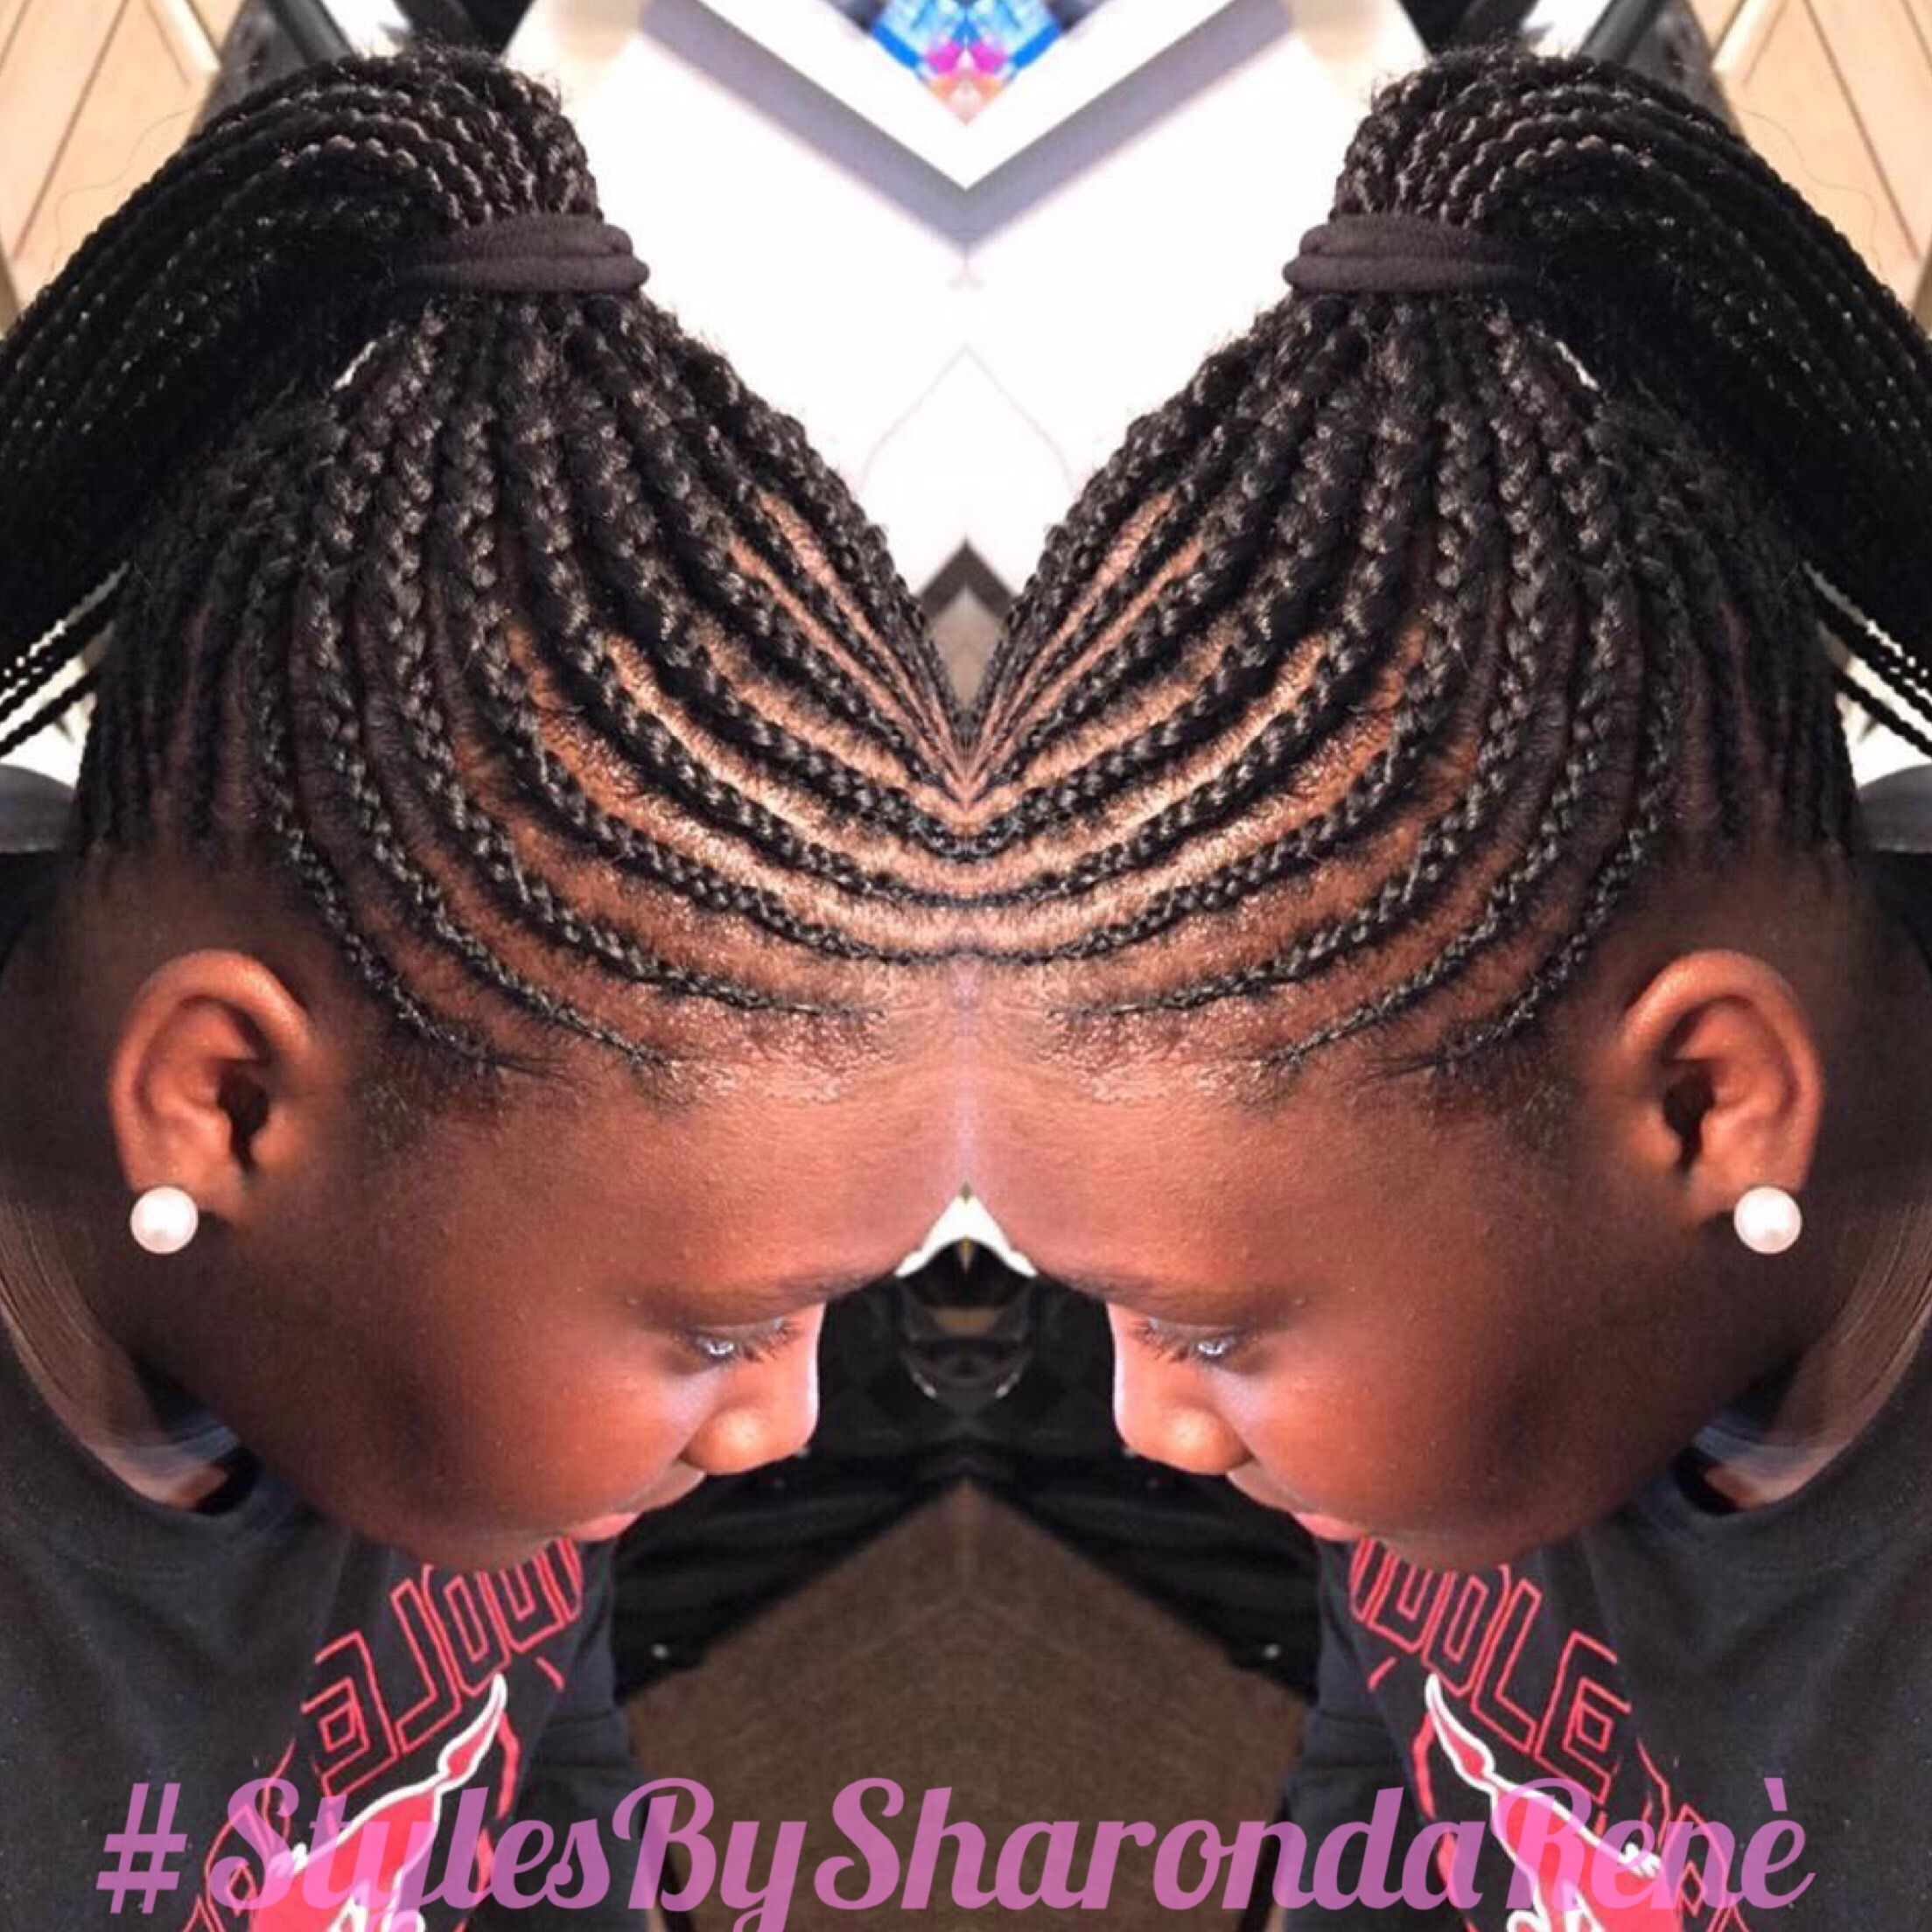 Braided Ponytail Basic Cornrows With Extensions Added All Natural Style For 9 Year Old Cornrows With Extensions Braided Ponytail Kids Braids